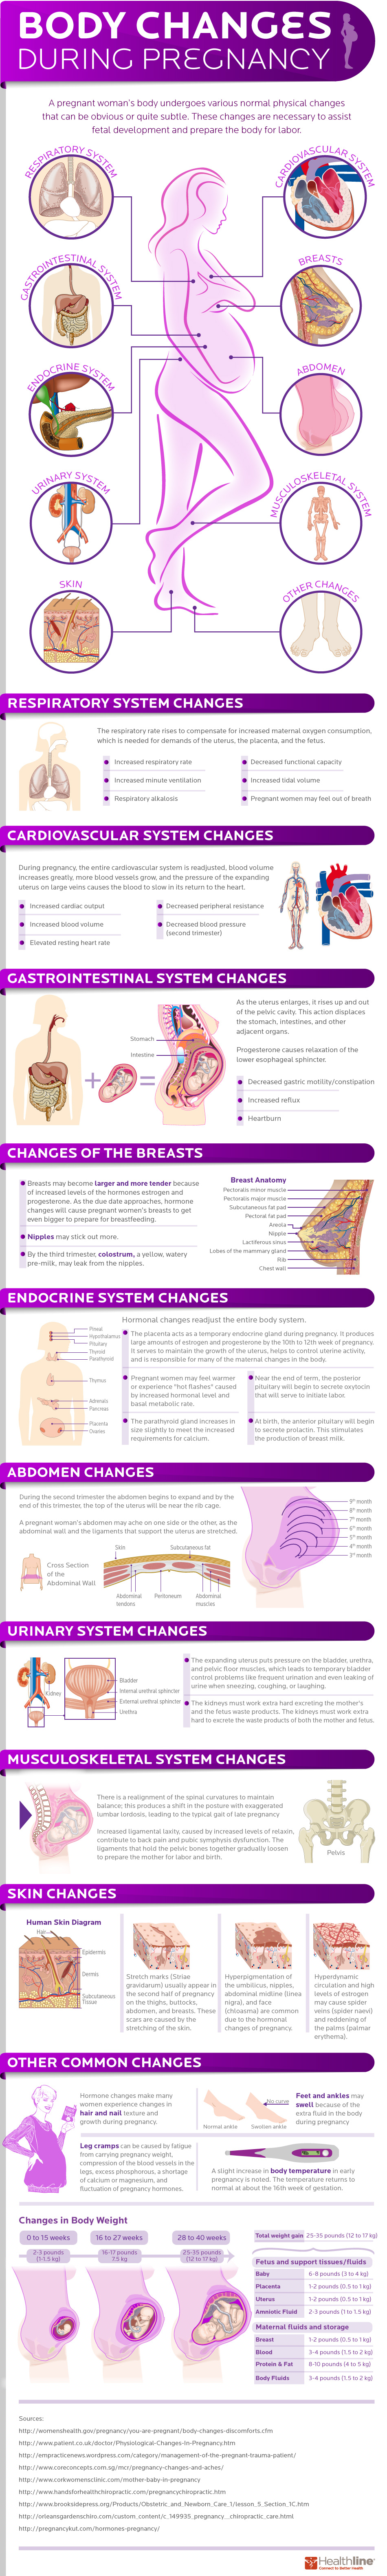 Body Changes During Pregnancy [INFOGRAPHIC] – Infographic List